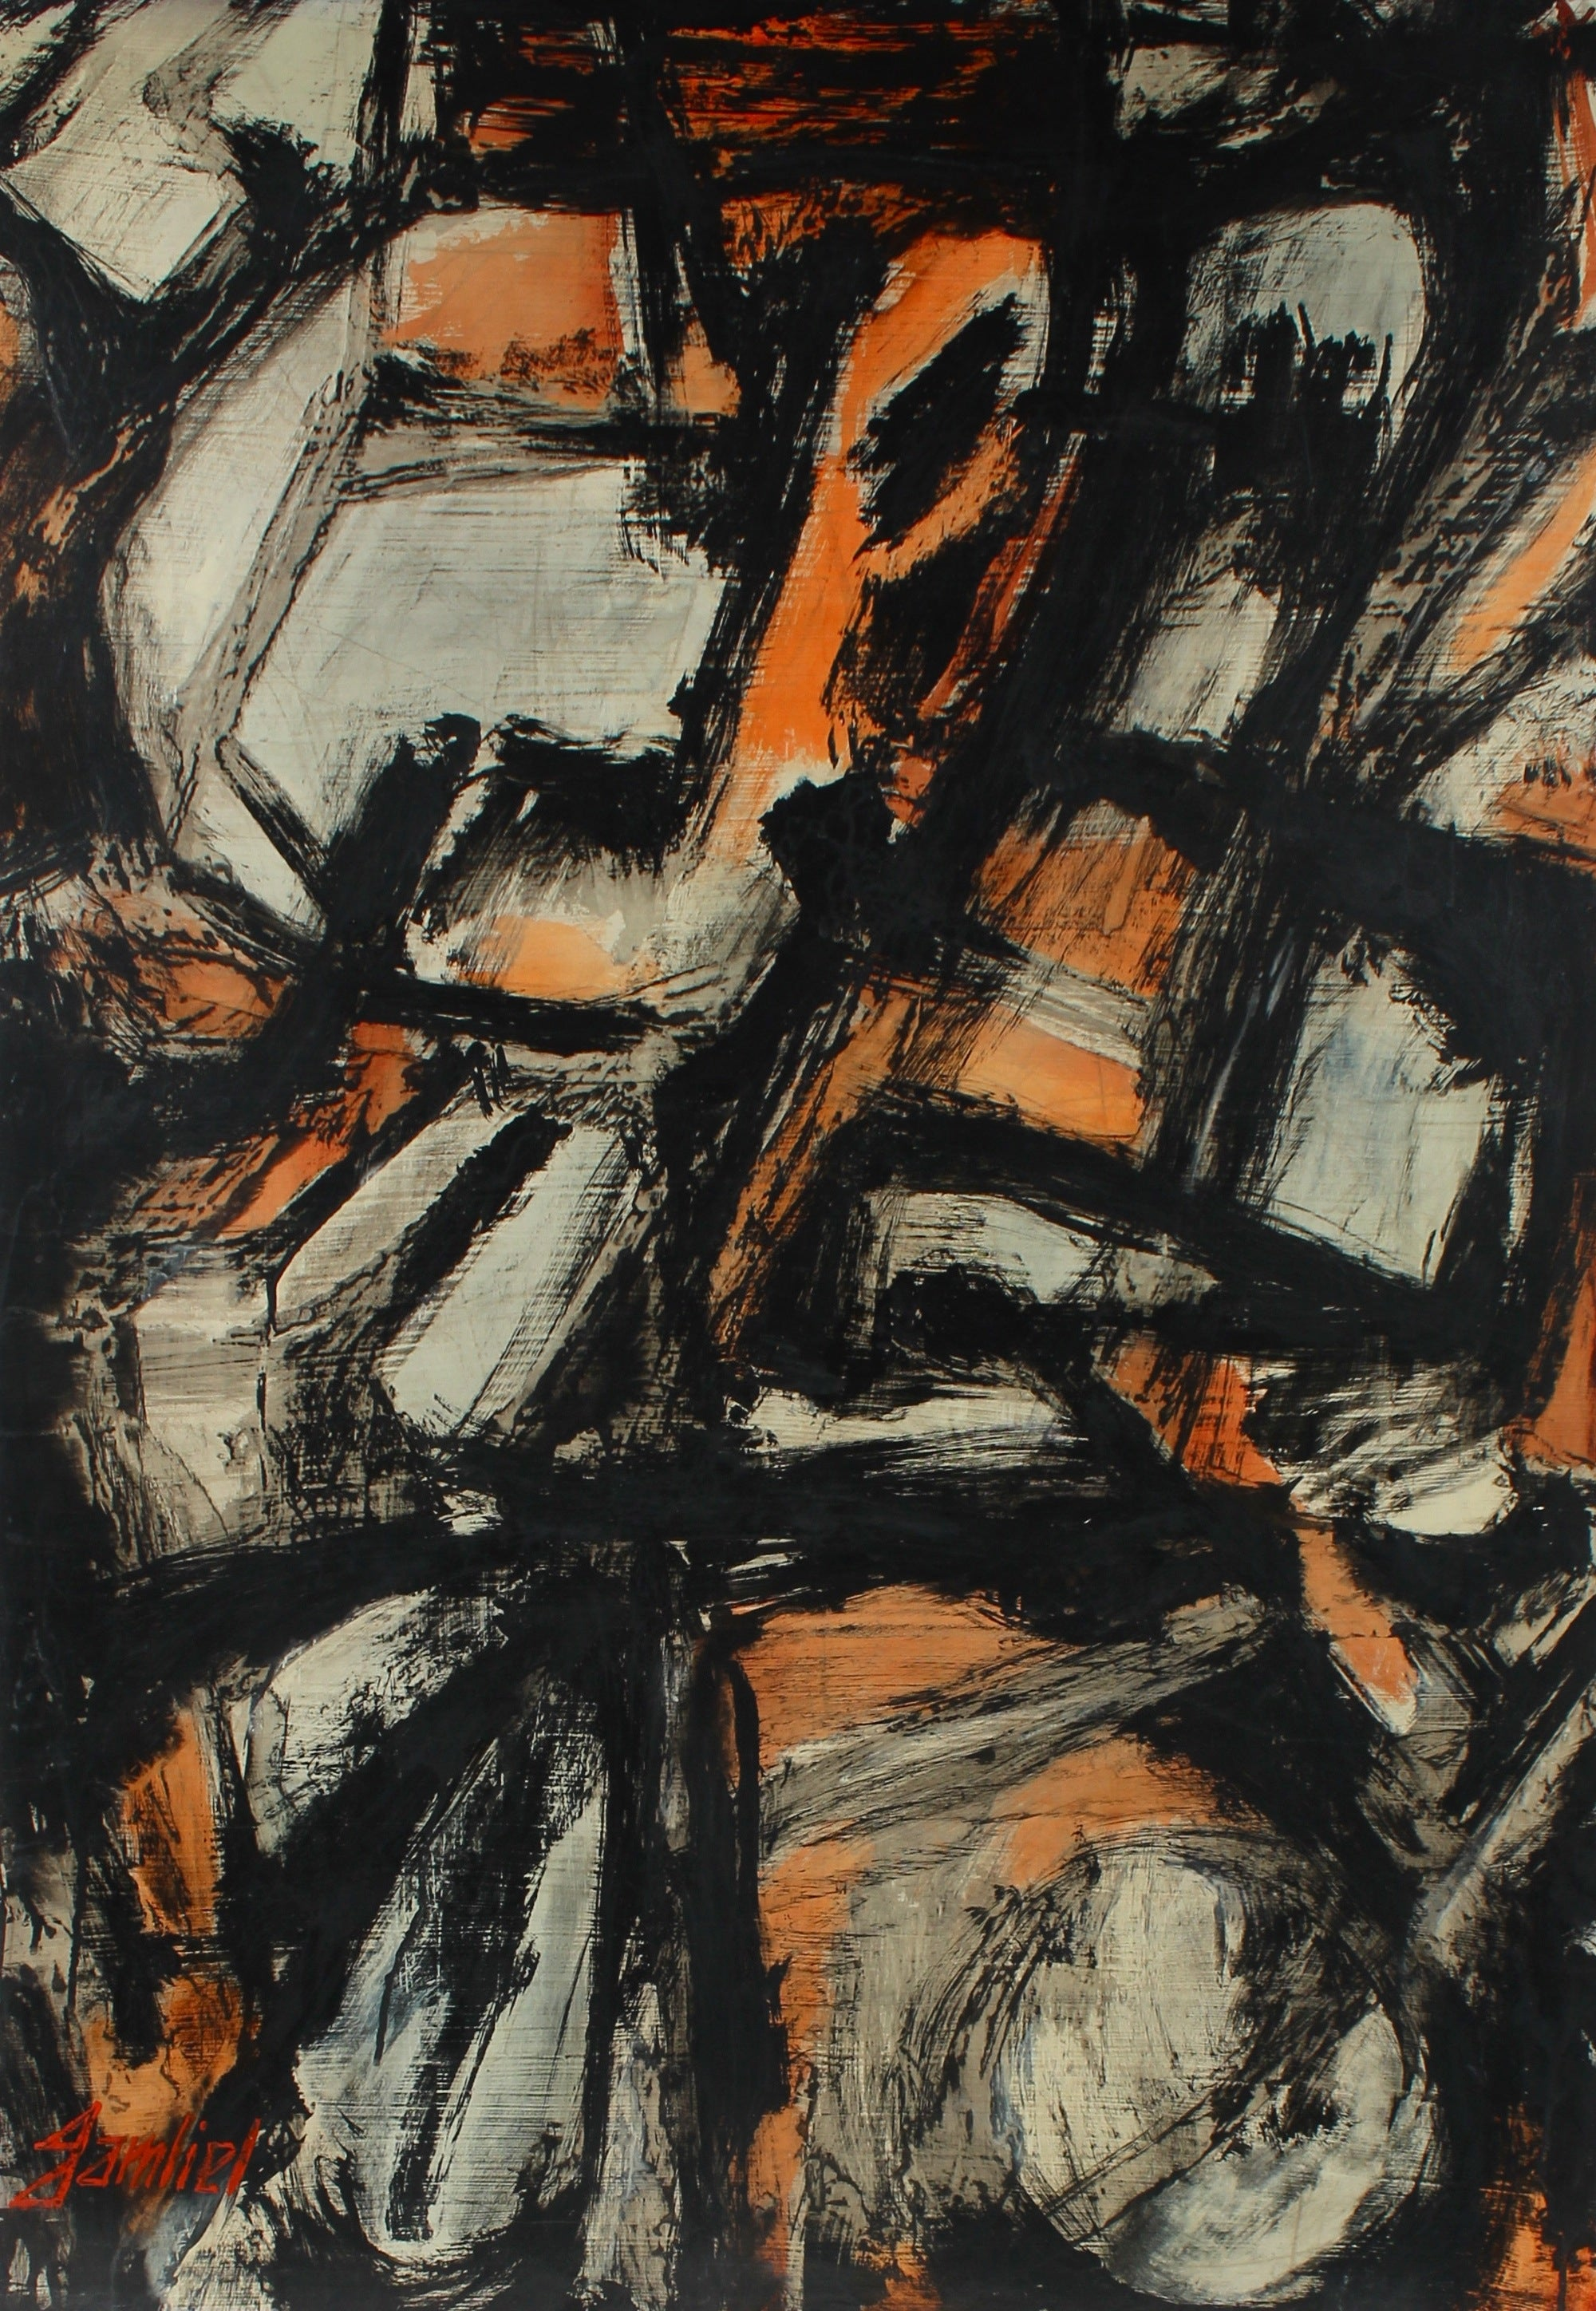 Orange & Black Abstract Expressionist Paint on Masonite<br><br>#95840